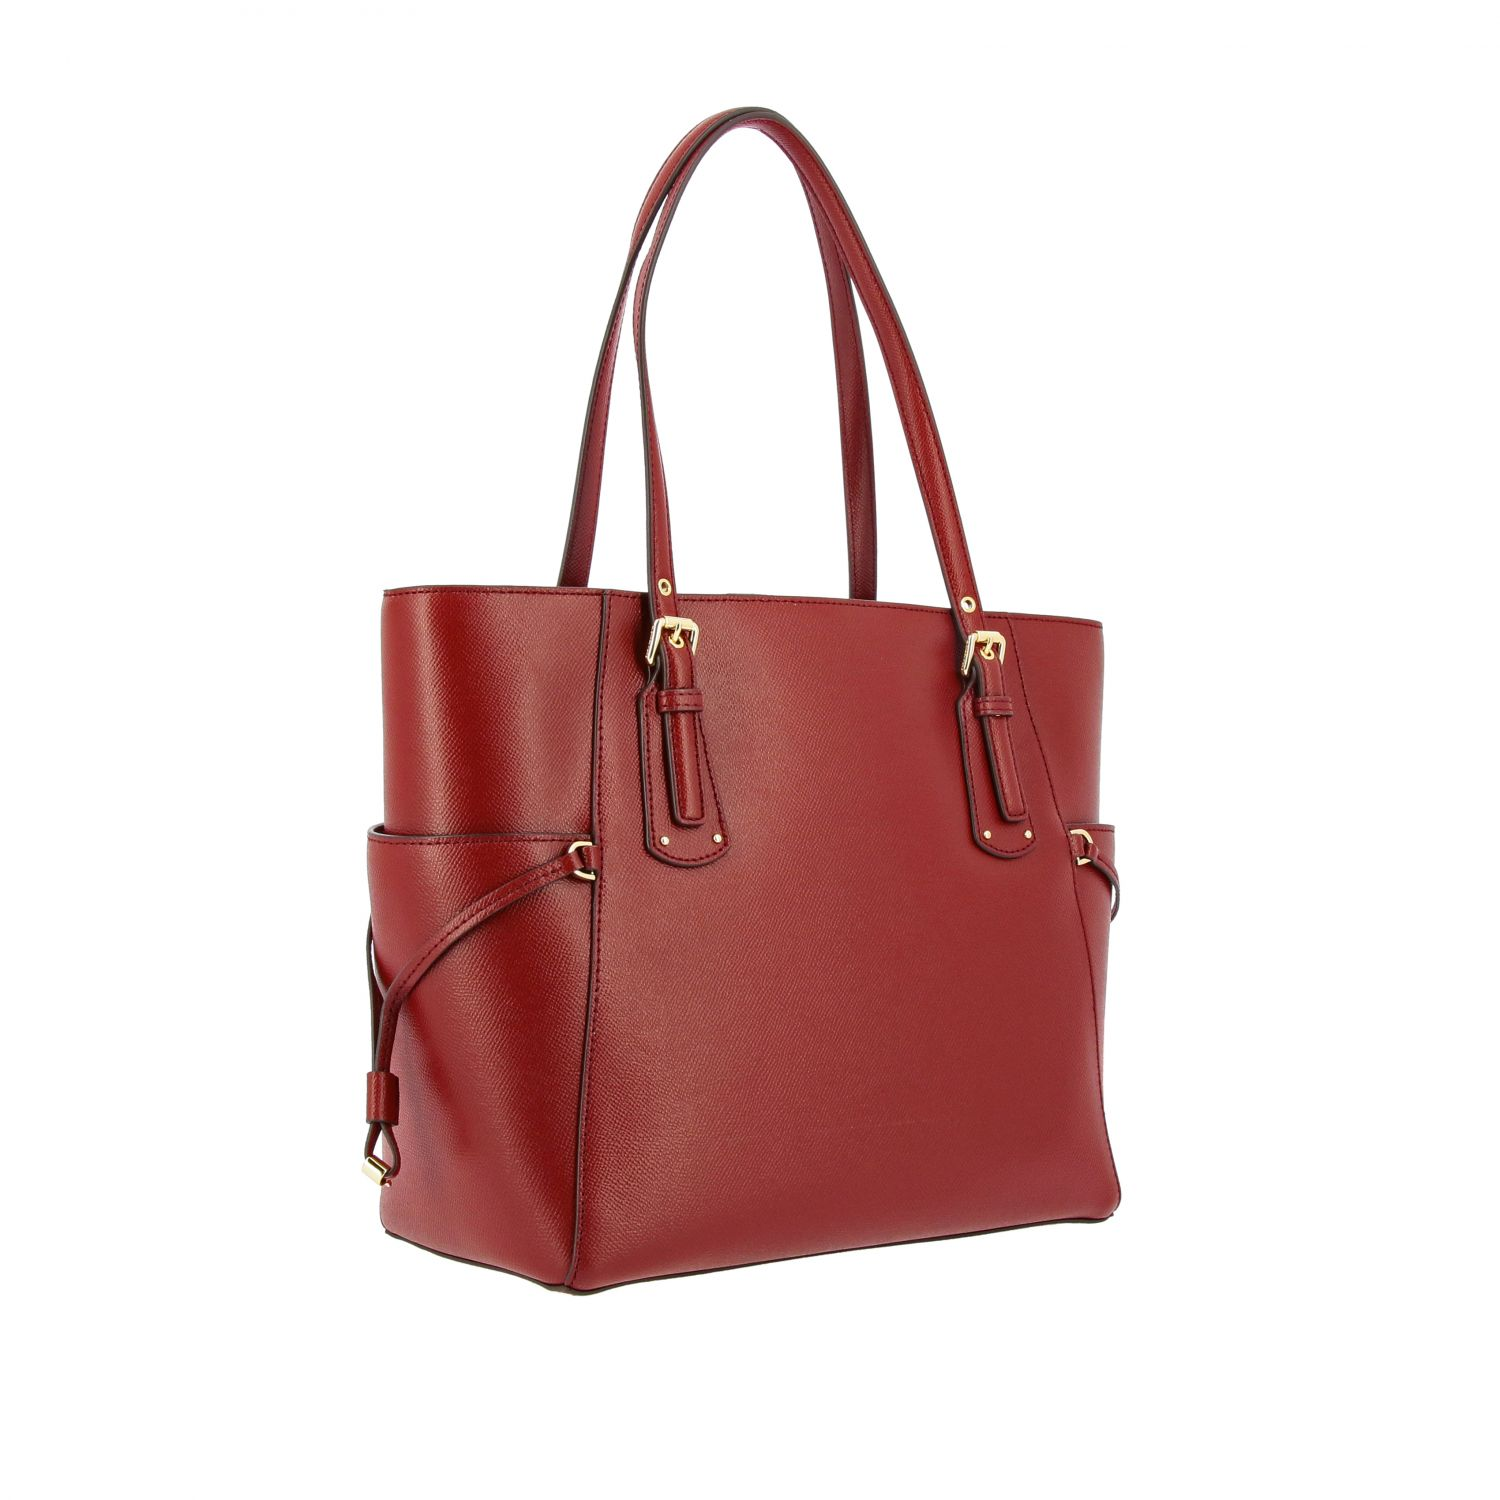 Michael Michael Kors Voyager east west tote 真皮手袋 酒红 3